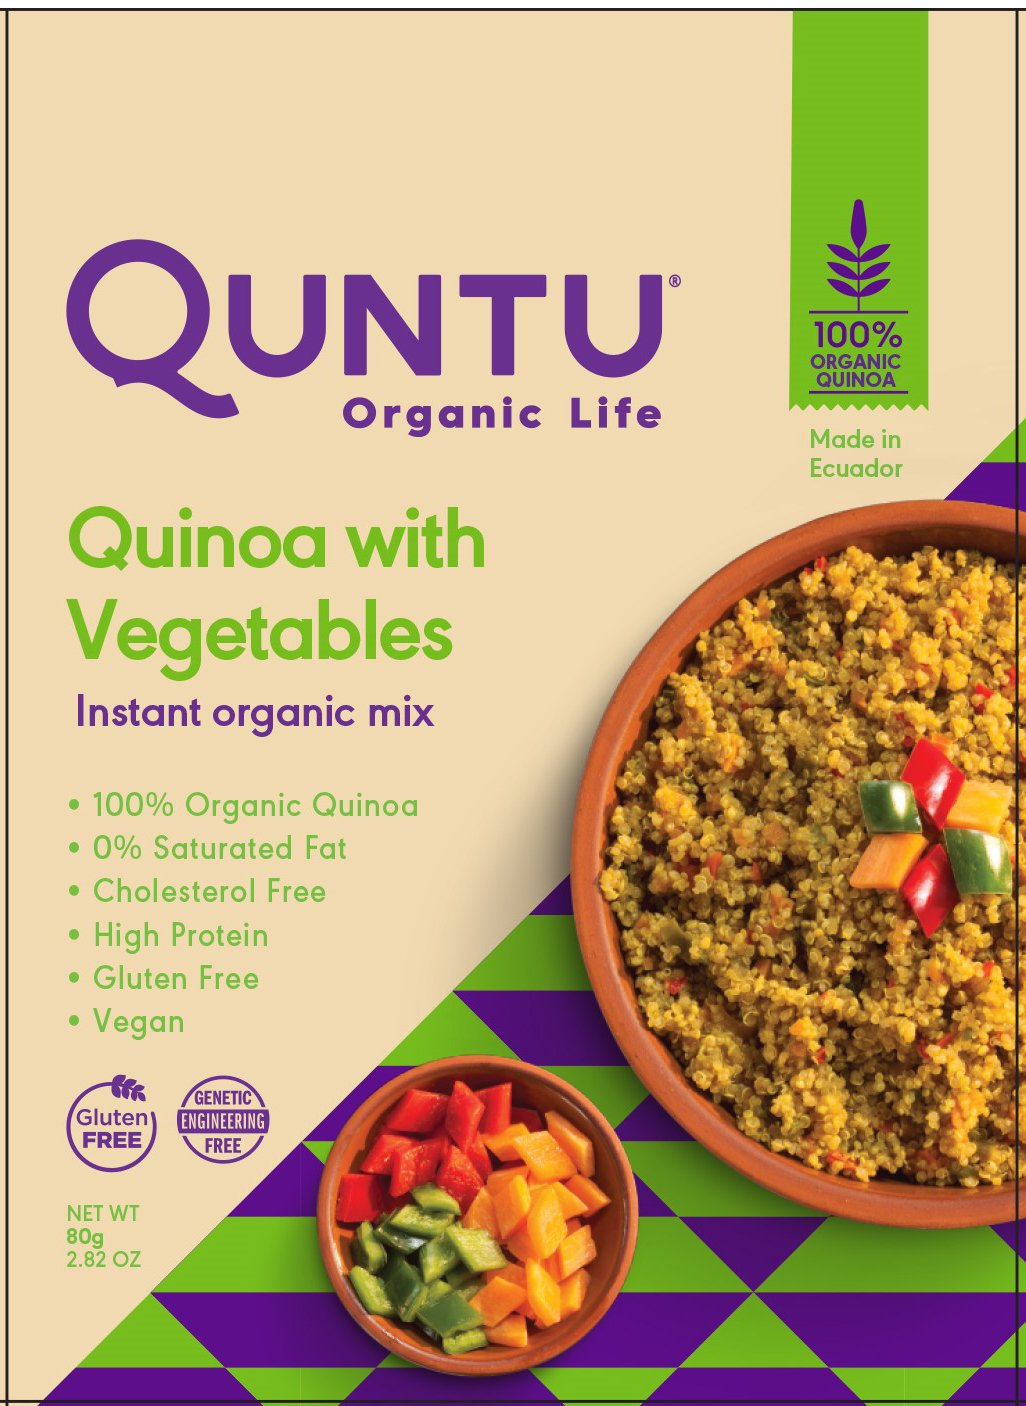 Amazon.com : Quntu Quinoa Mix, Quinoa with Vegetables, 2.8 oz : Grocery & Gourmet Food